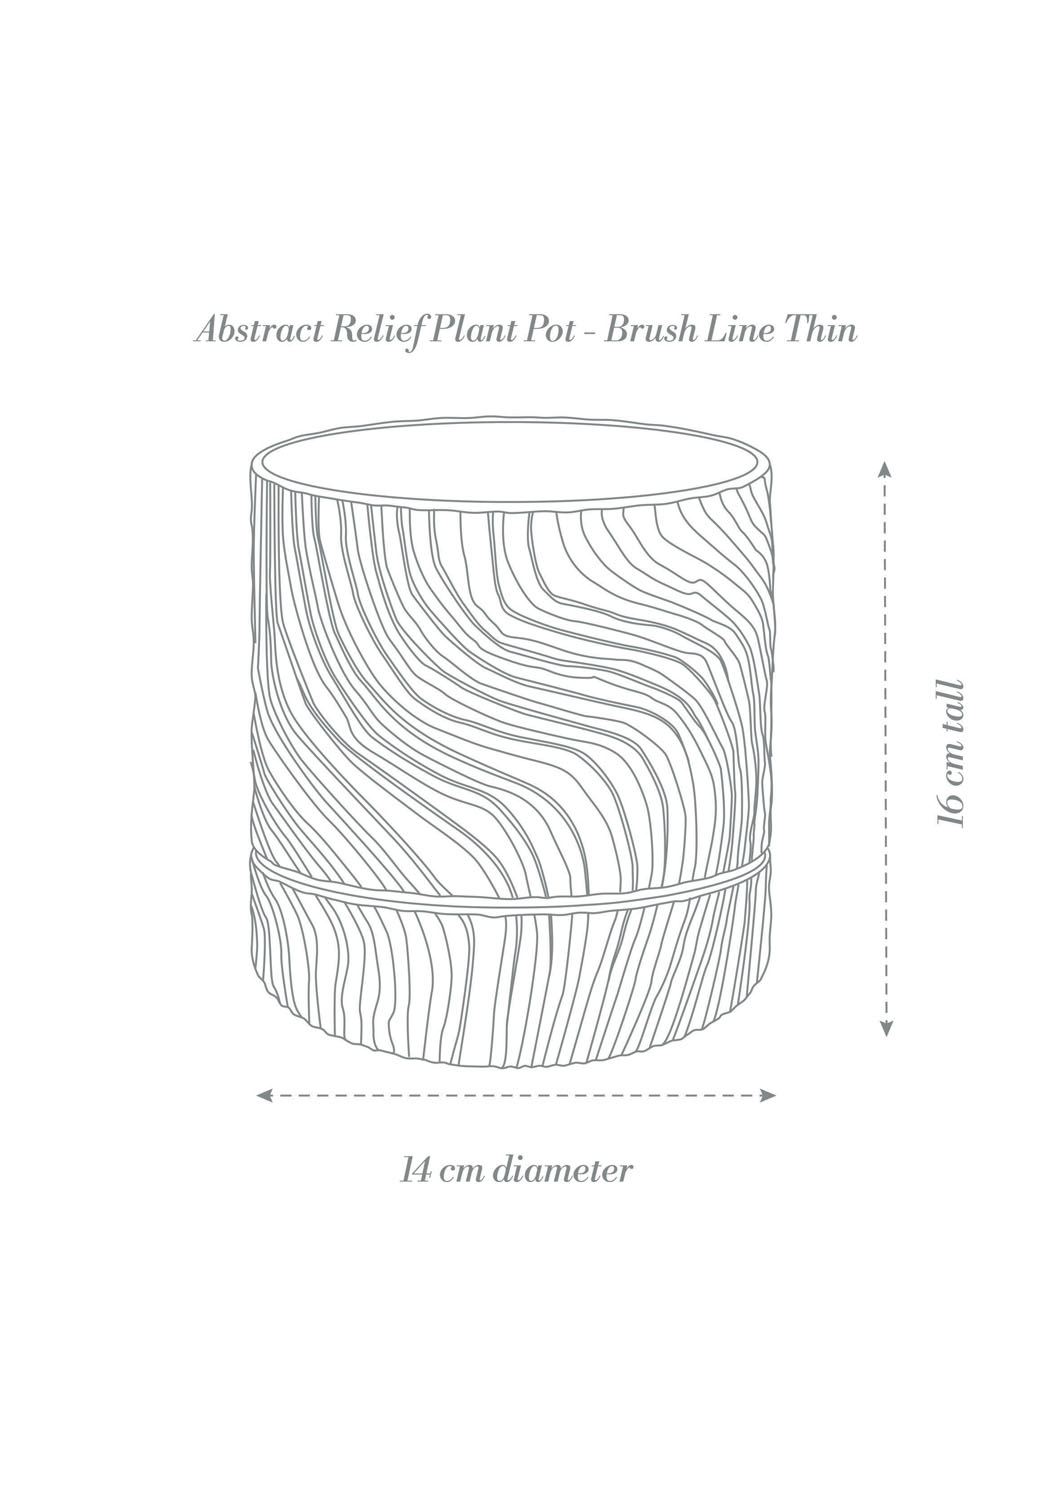 Abstract Relief Plant Pot - Brush Line Thin Product Diagram